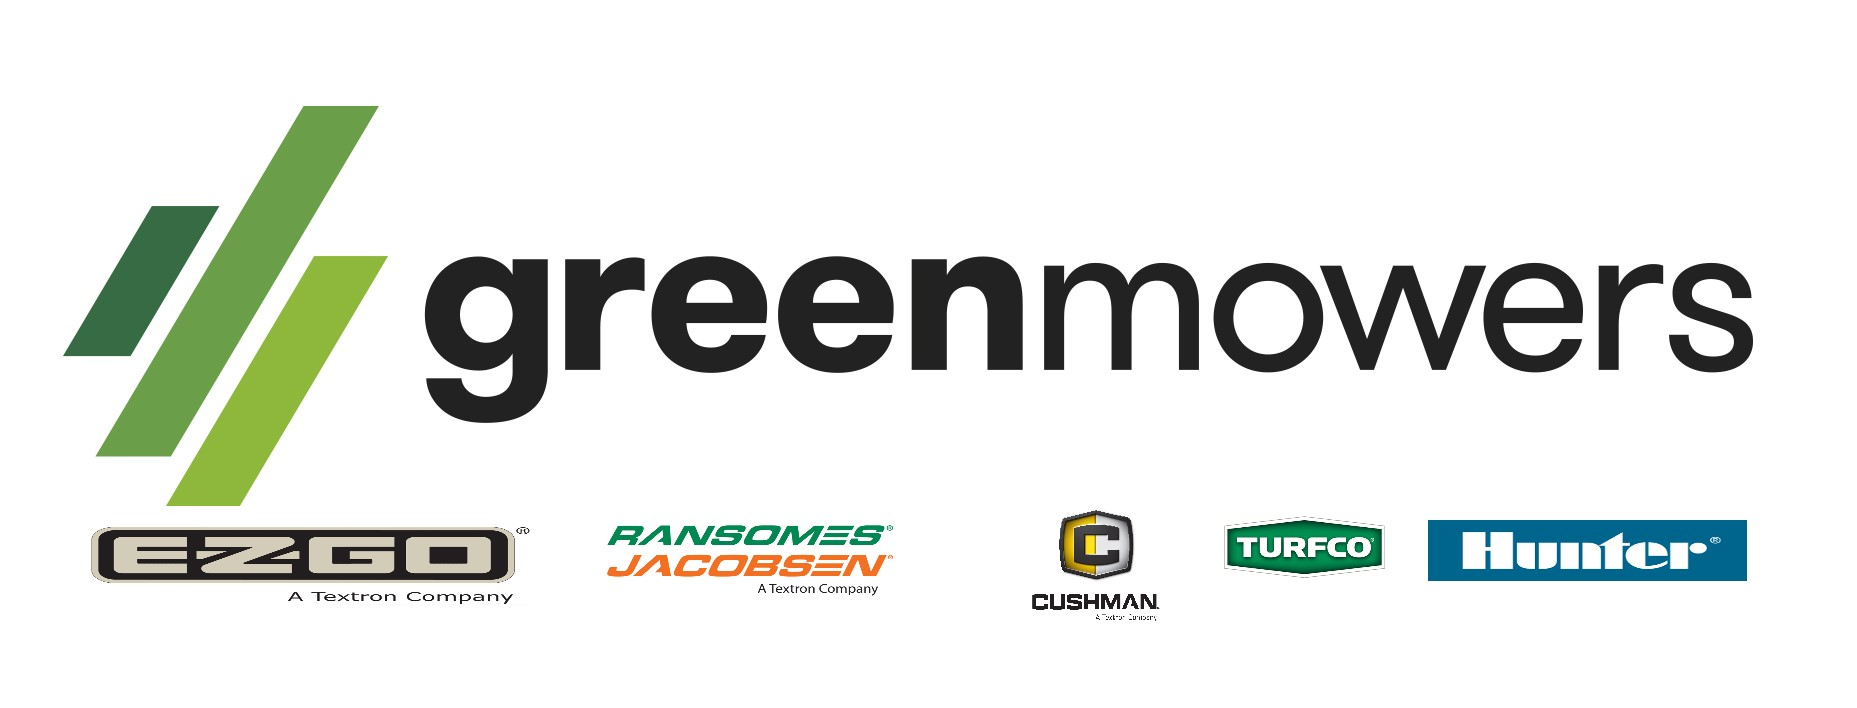 Greenmowers